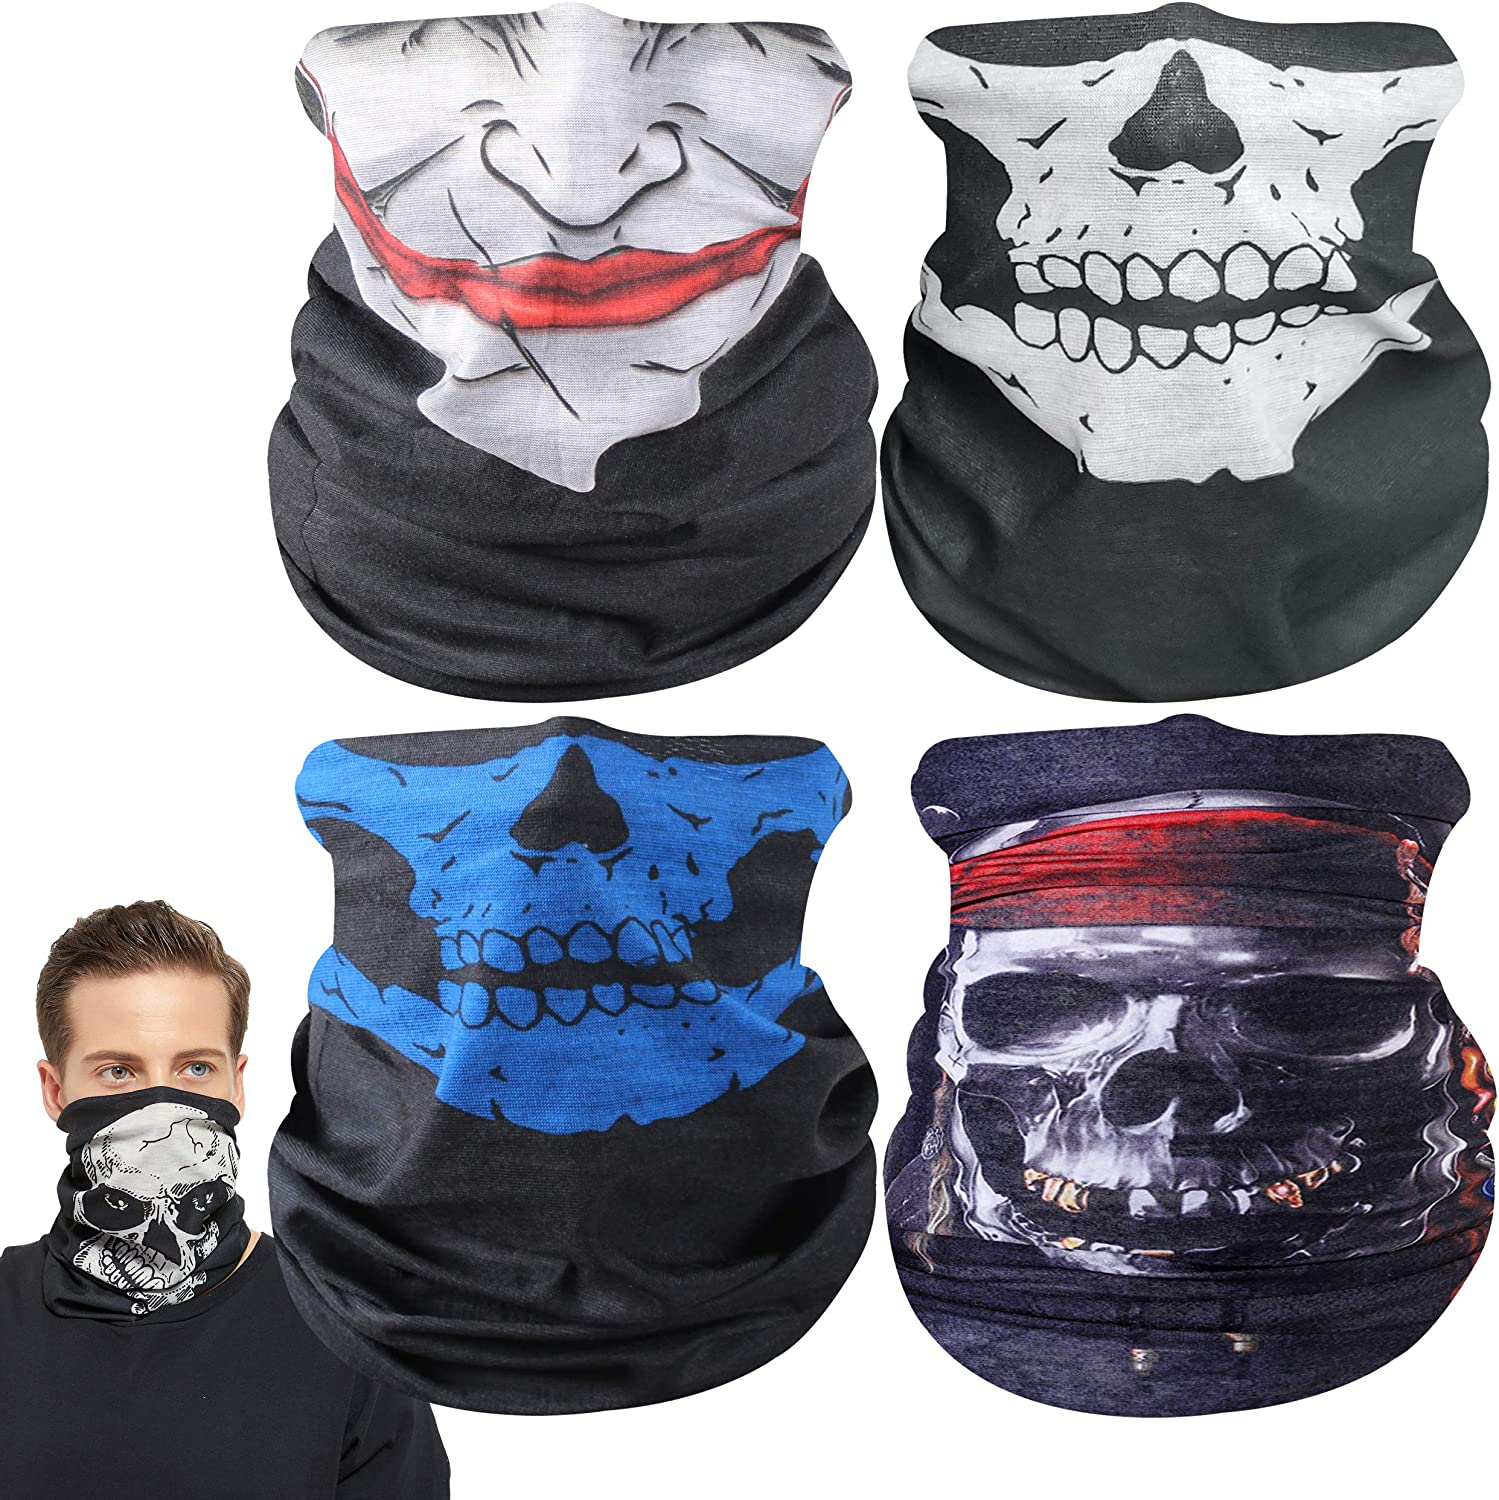 Ristake 4 Pieces Seamless Neck Gaiter Men Women Face Mask Elastic Balaclava Headband Face Cover for Sun UV Dust Wind Protection Cycling Hiking Sports